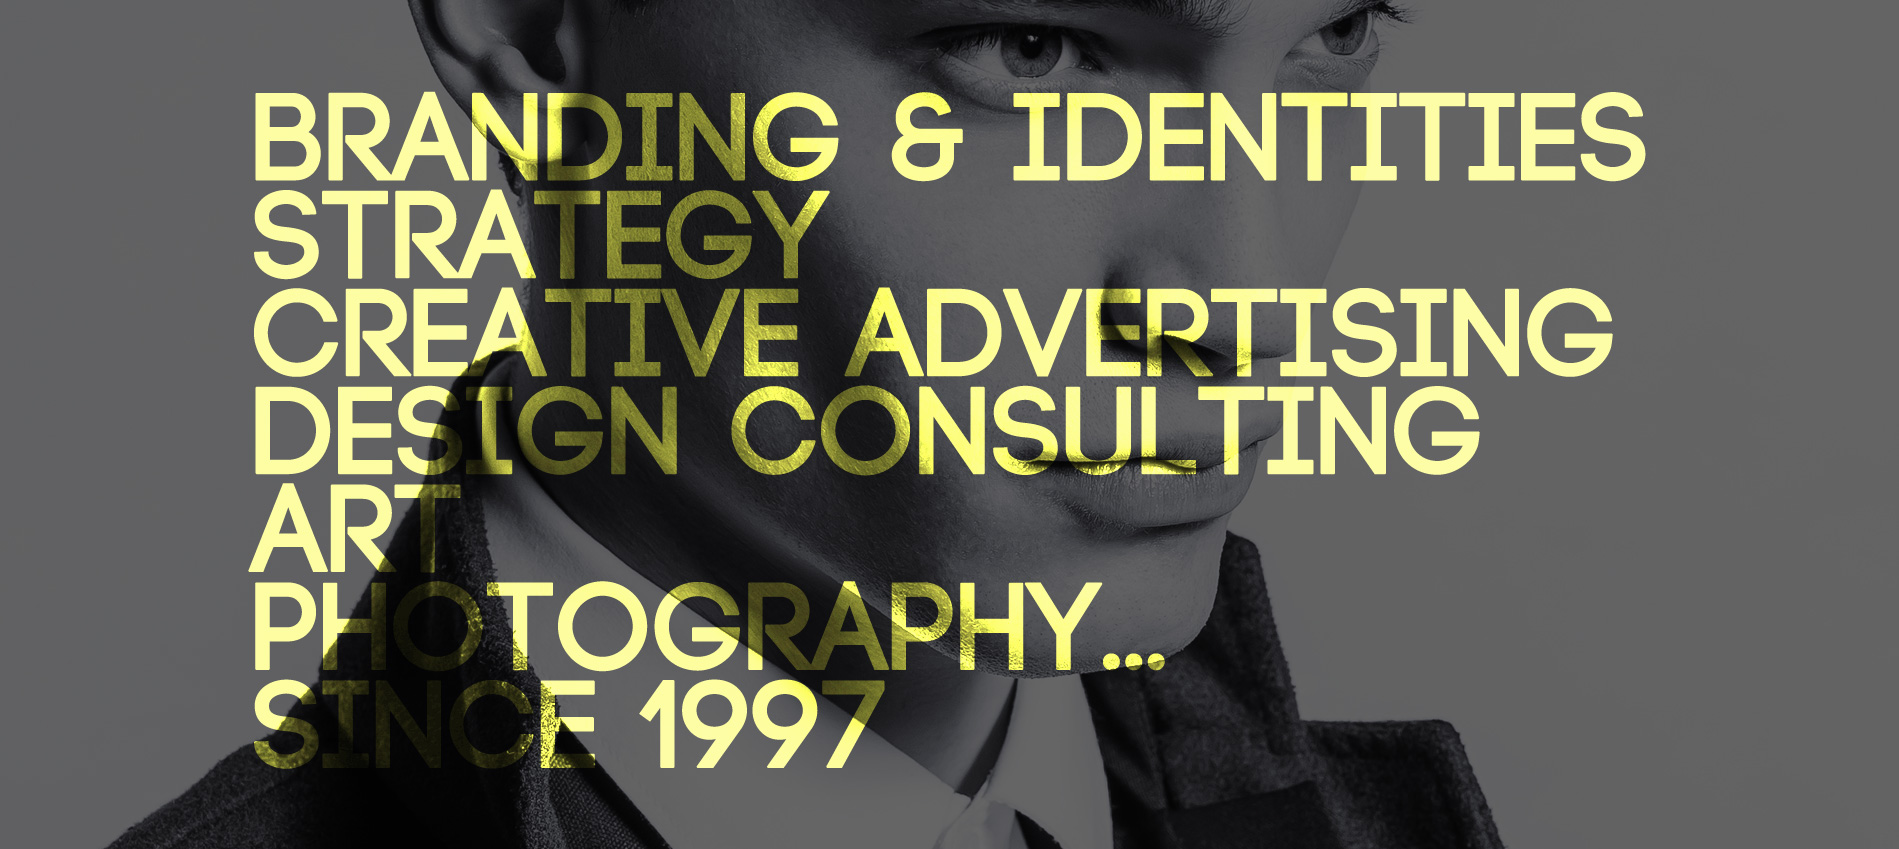 Branding, Identities, Design, Consulting, Art, Photography